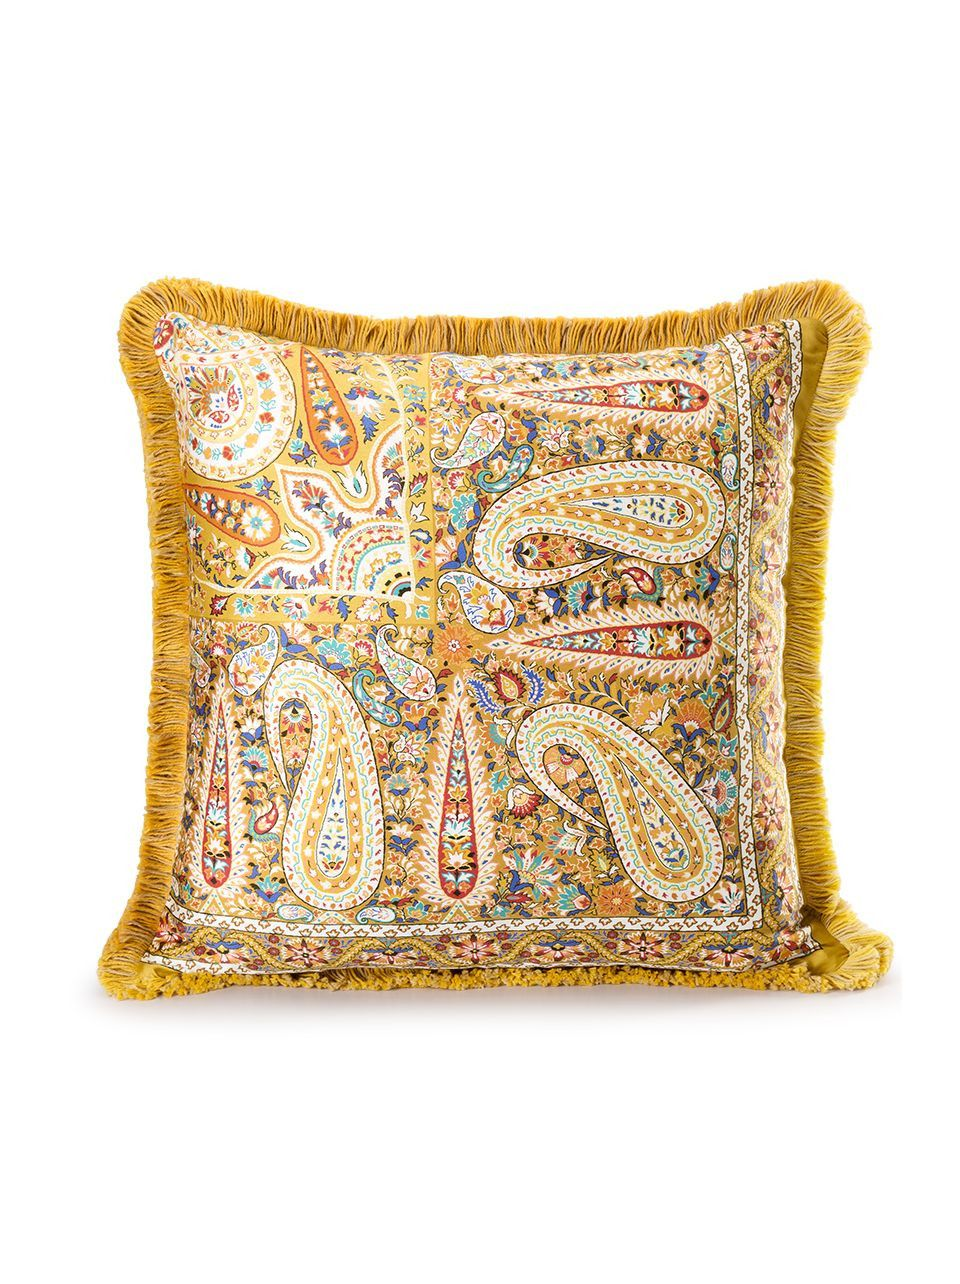 etro yellow fringed throw pillow | Paisley design, Paisley